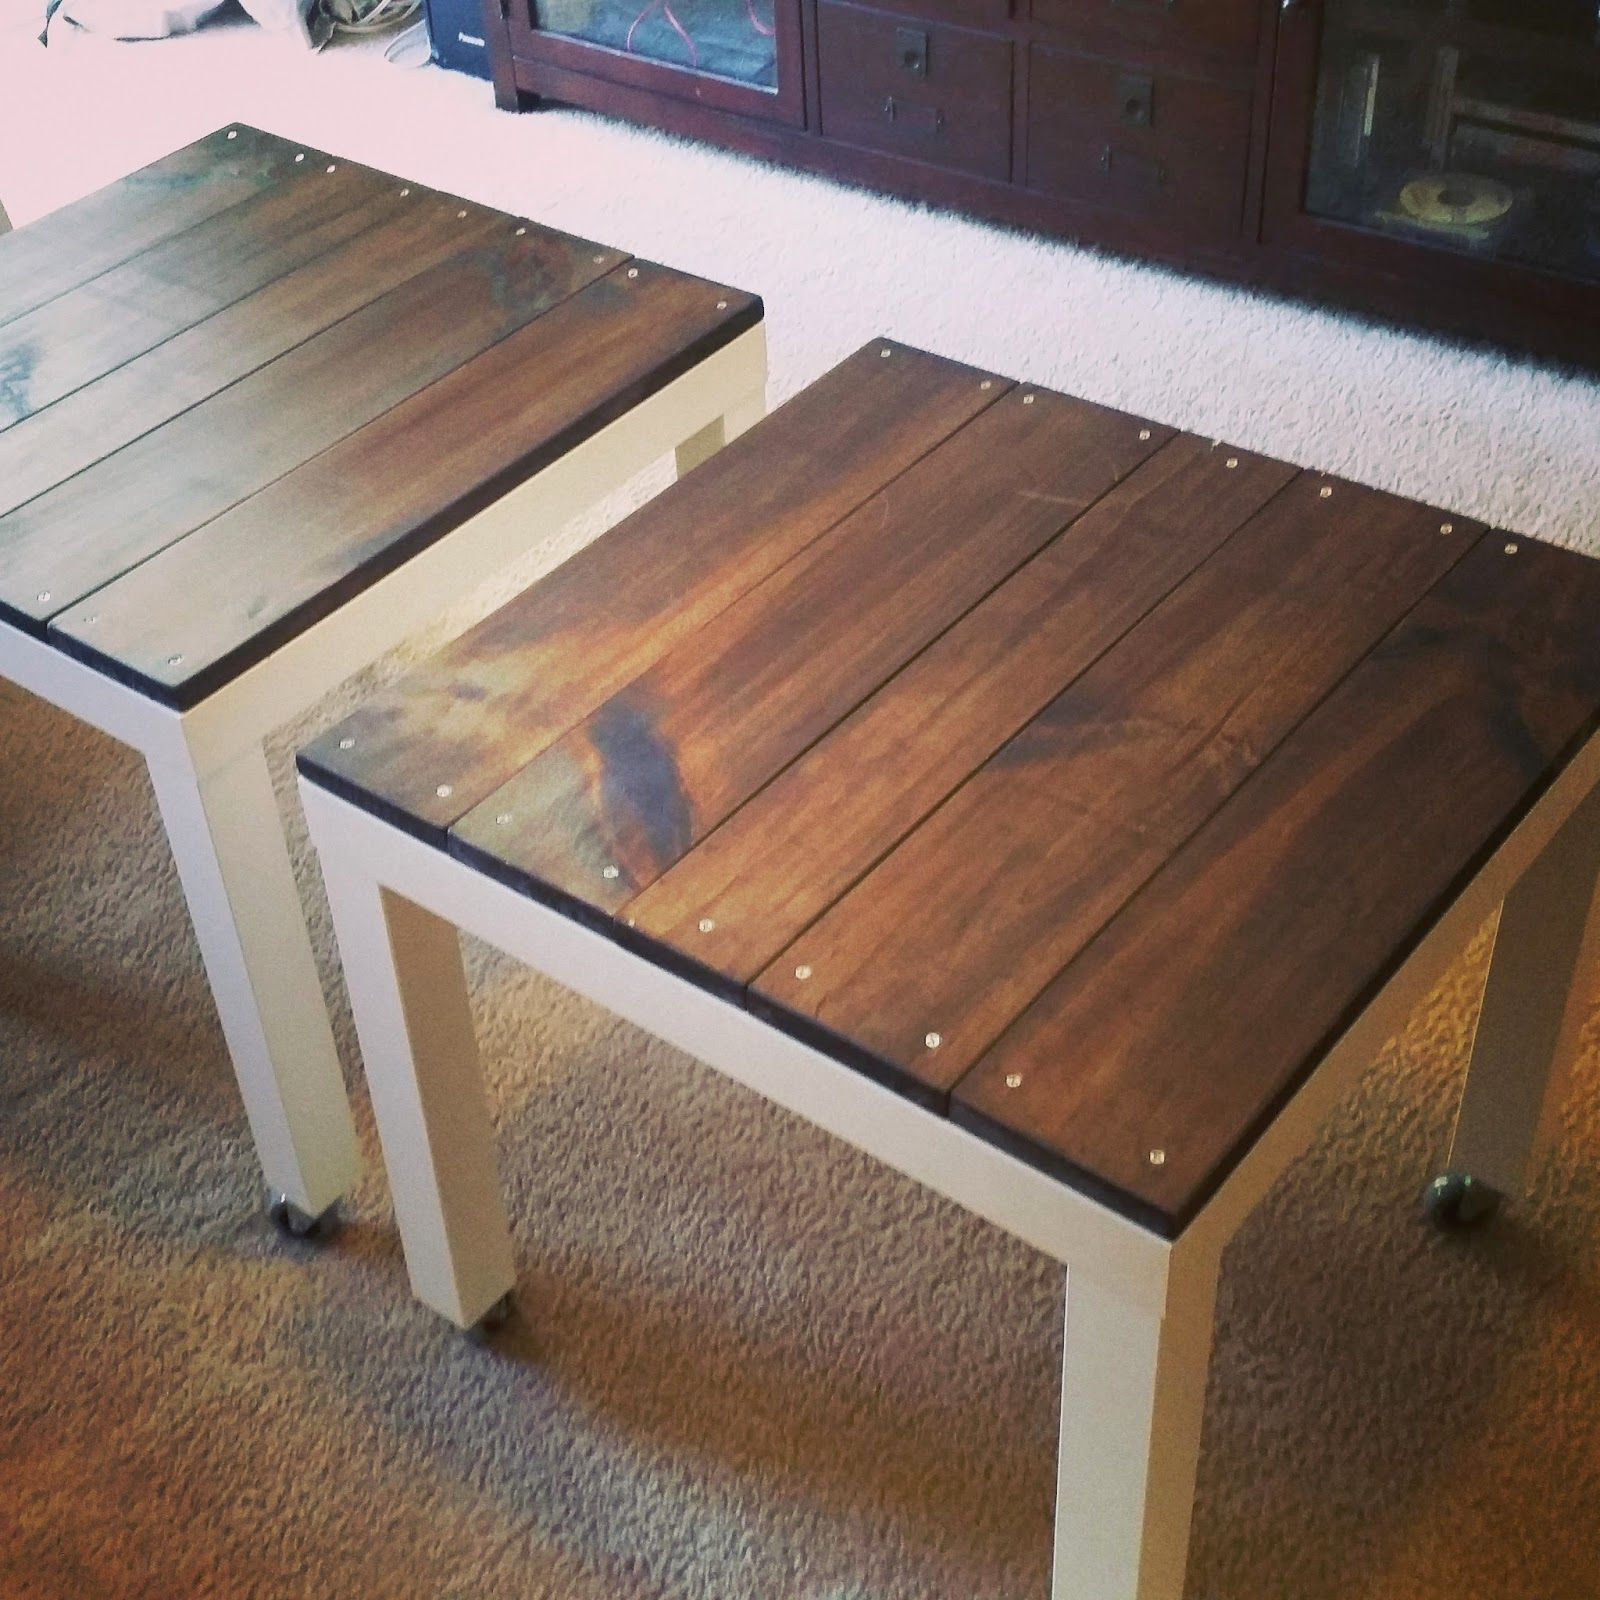 Ikea Lack Hack   Add A Weathered, Industrial Look To Your Inexpensive Lack  Tables With Knotted Pine And Metal Wheels